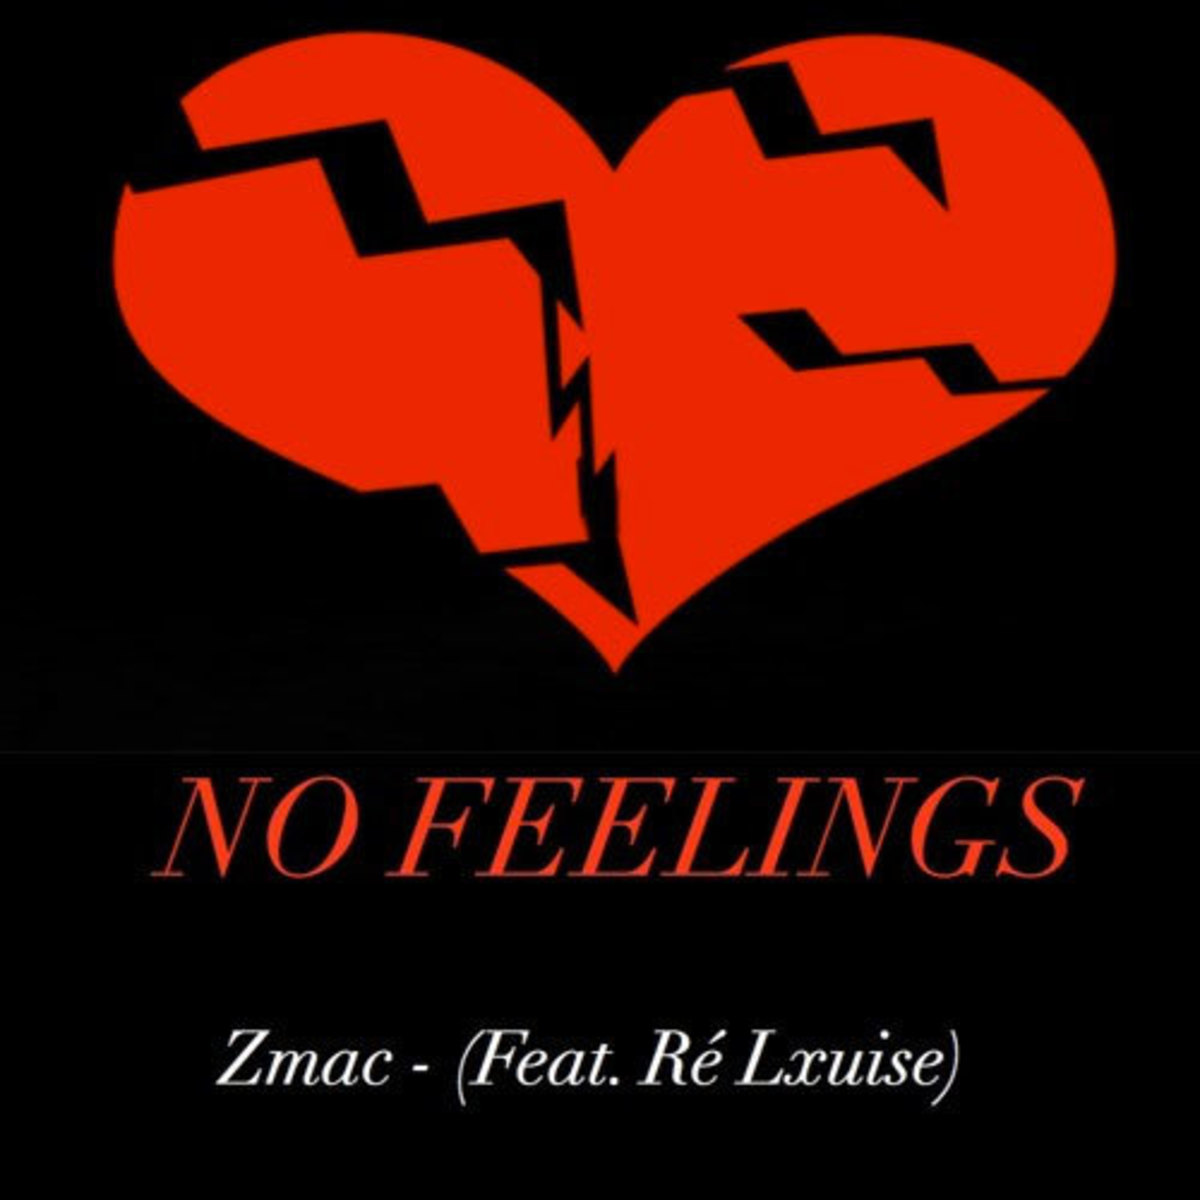 zmac-no-feelings.jpg